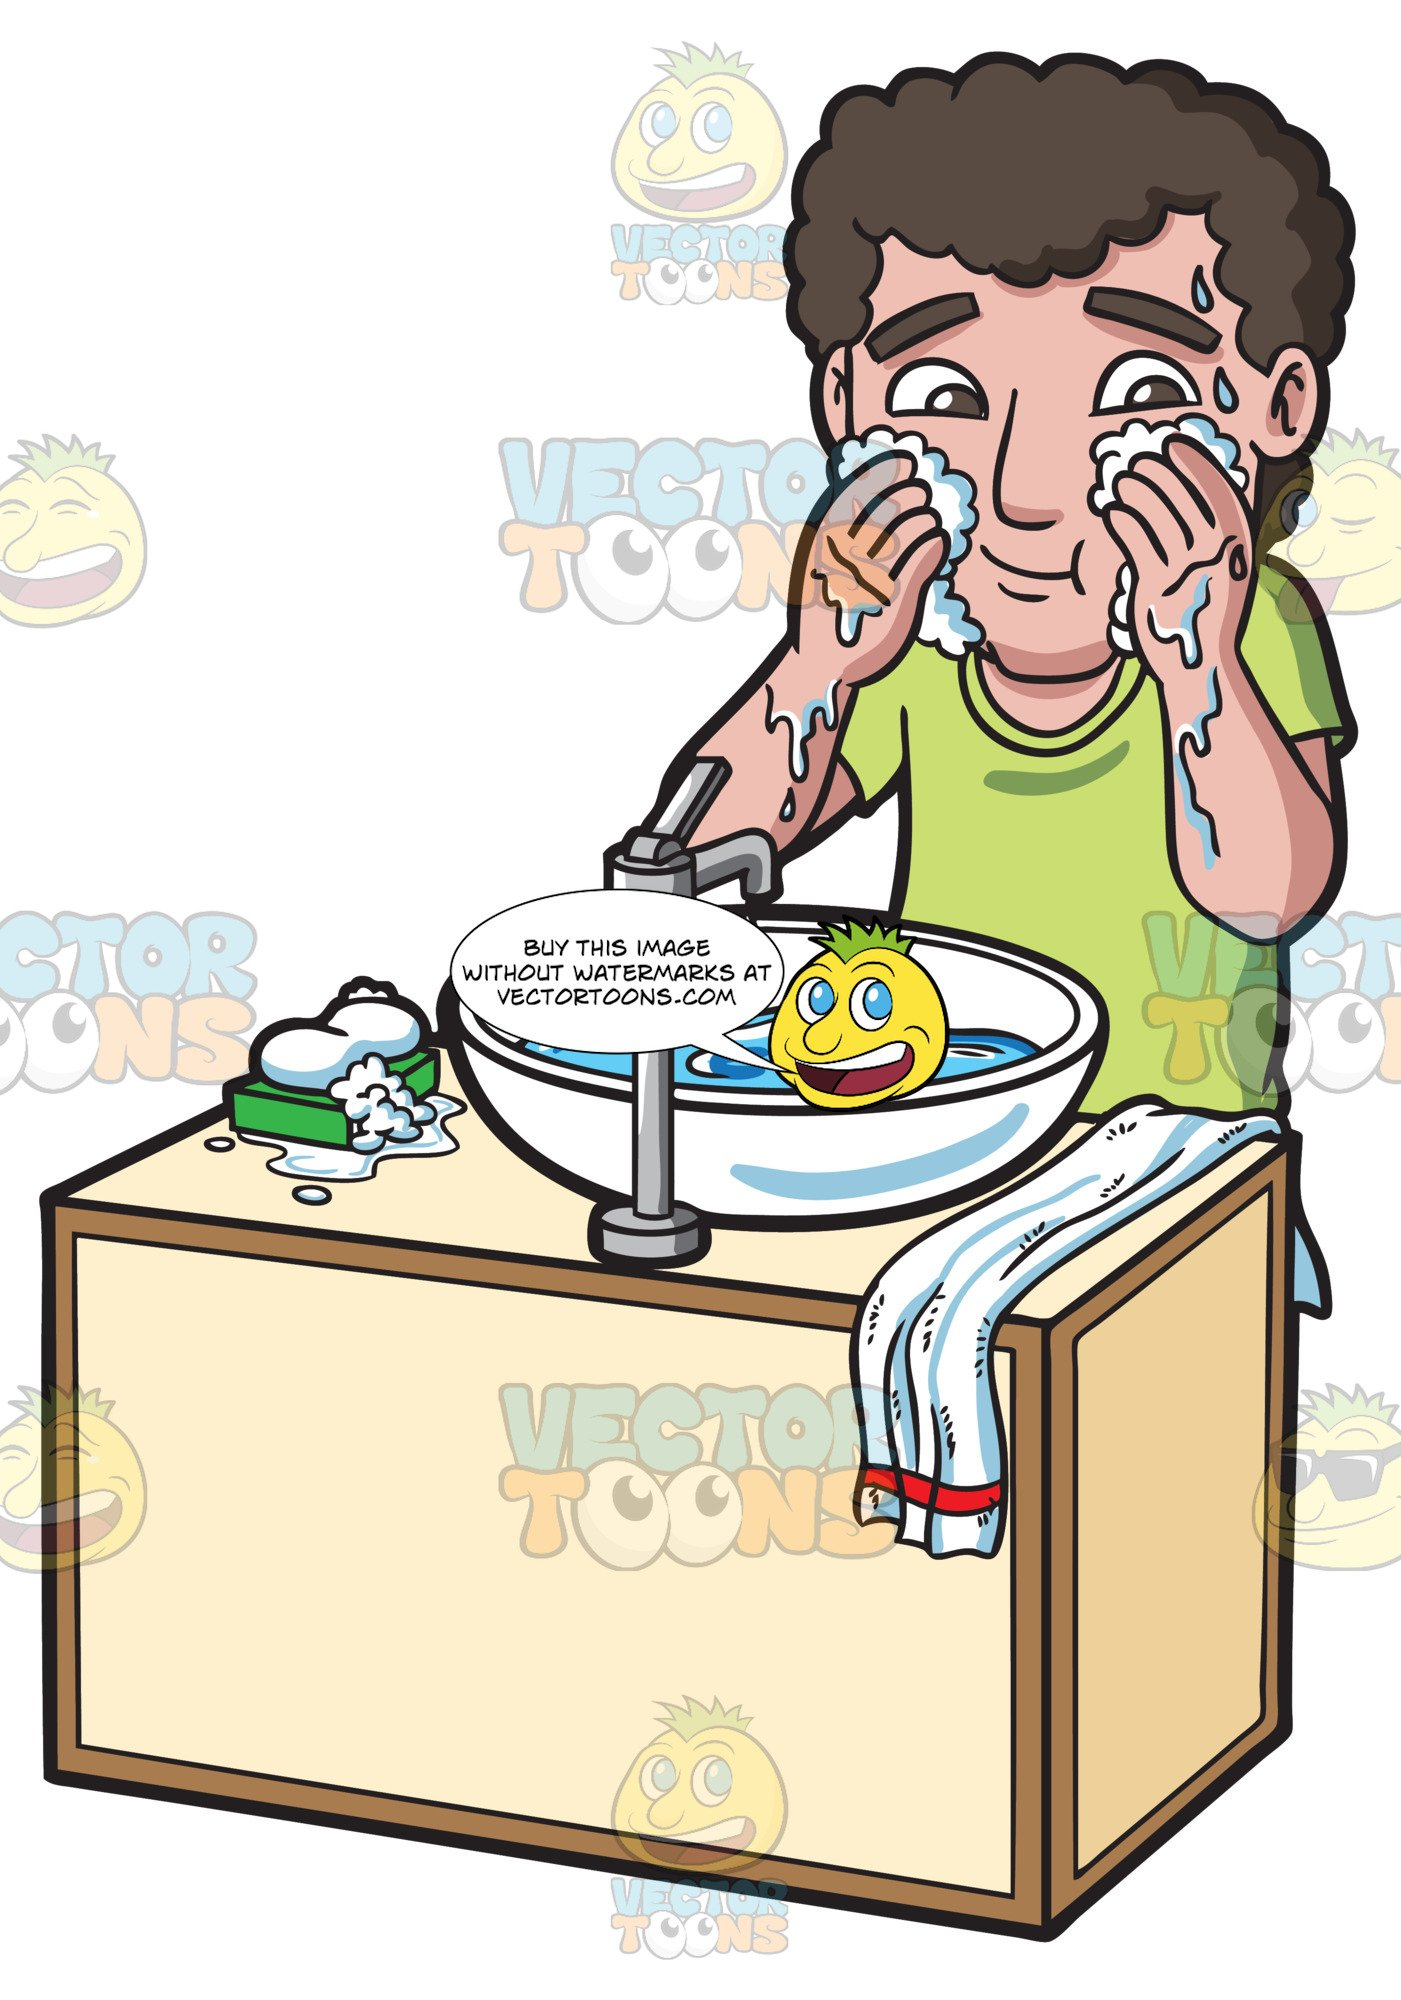 Washing face with soap clipart clipart library stock A Man Washing And Cleaning His Face With Soap And Water clipart library stock